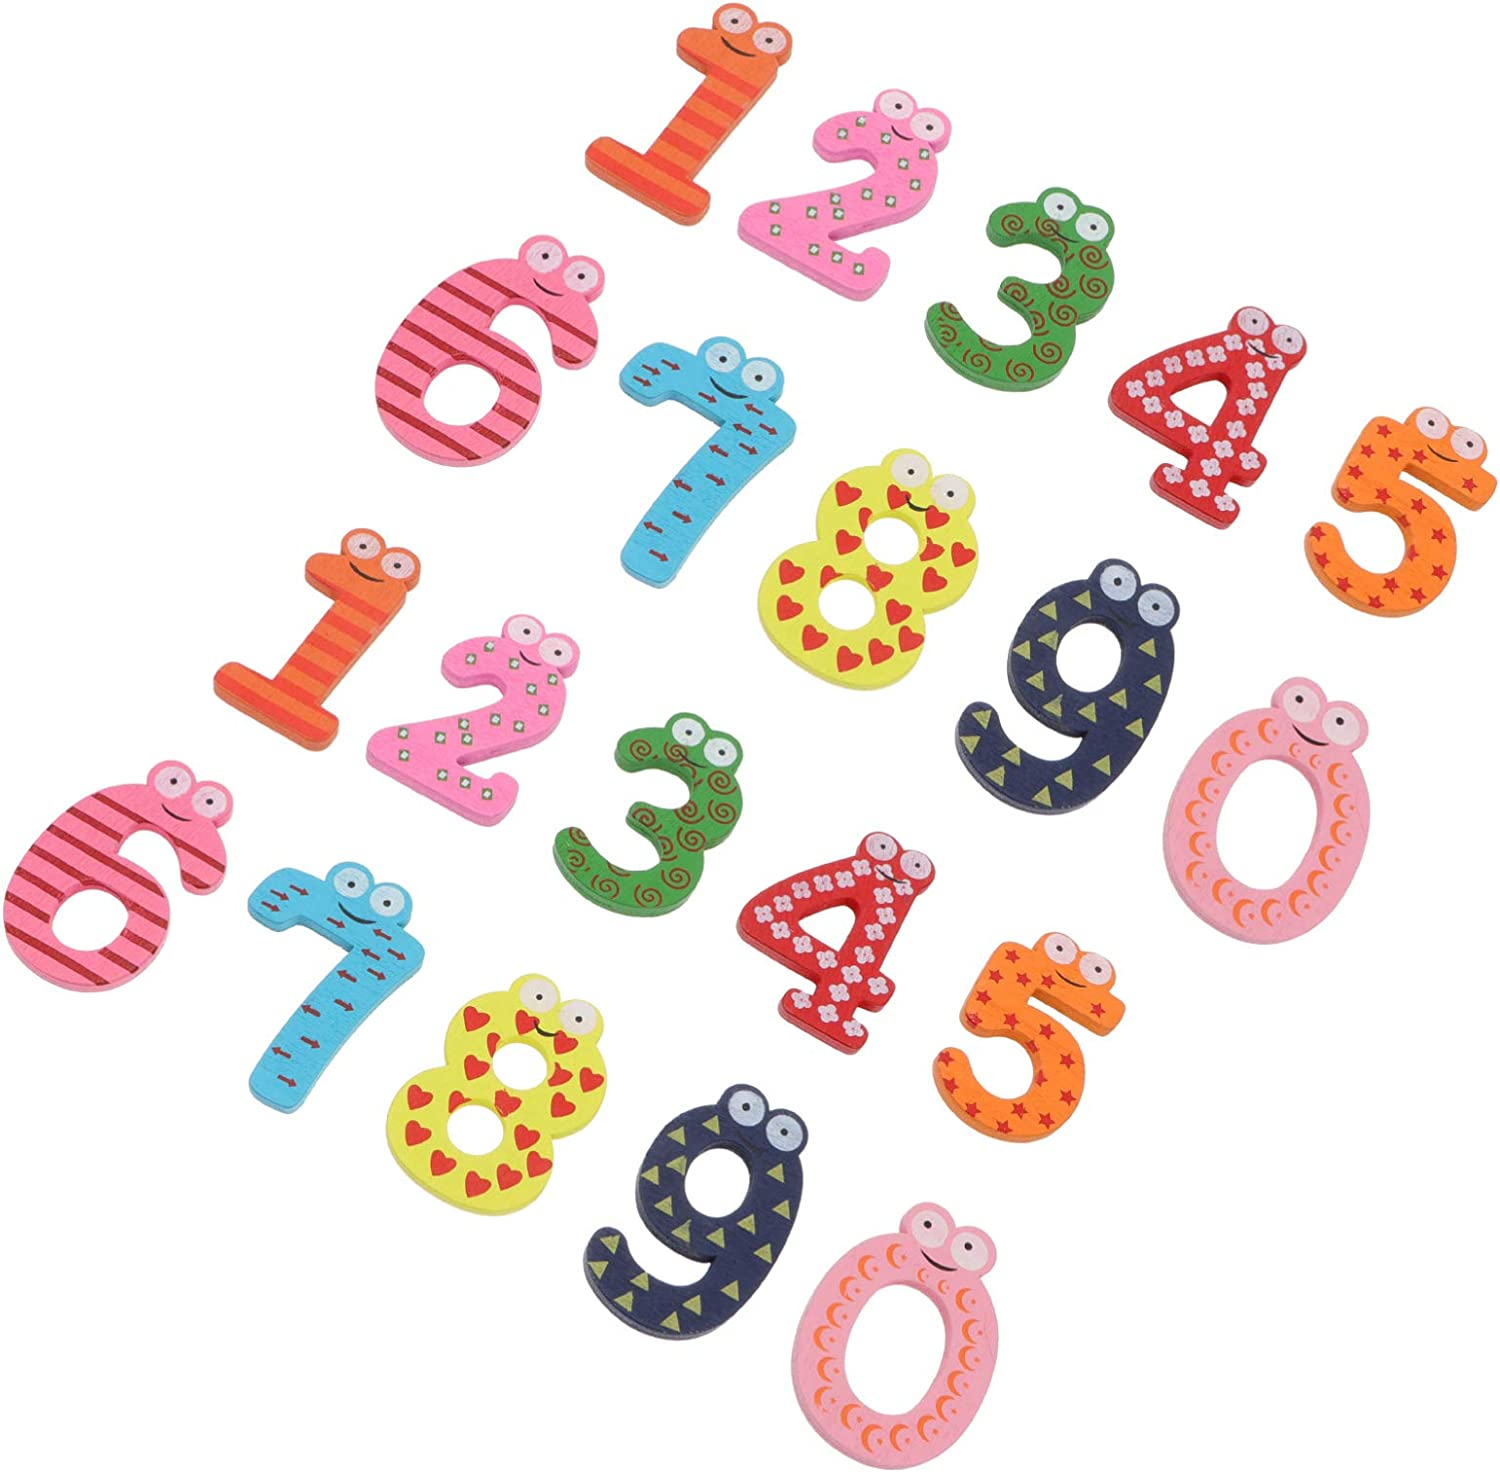 Toyvian 20pcs Fridge Magnets Magnetic Dealing full price reduction Numb For Kids Numbers Max 45% OFF 1-10